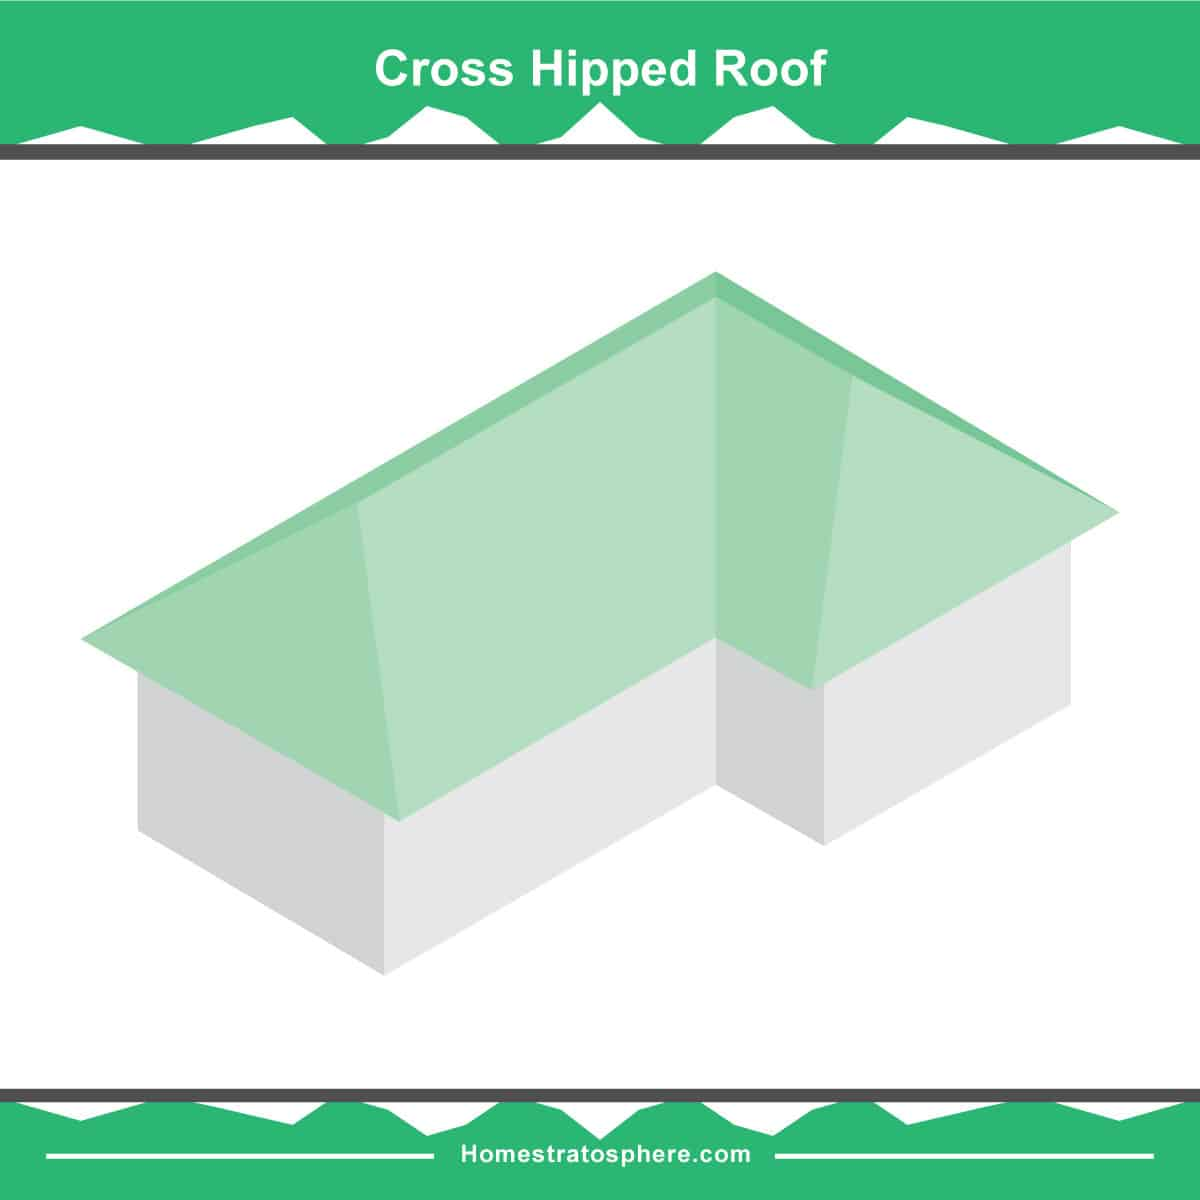 Cross hipped roof diagram